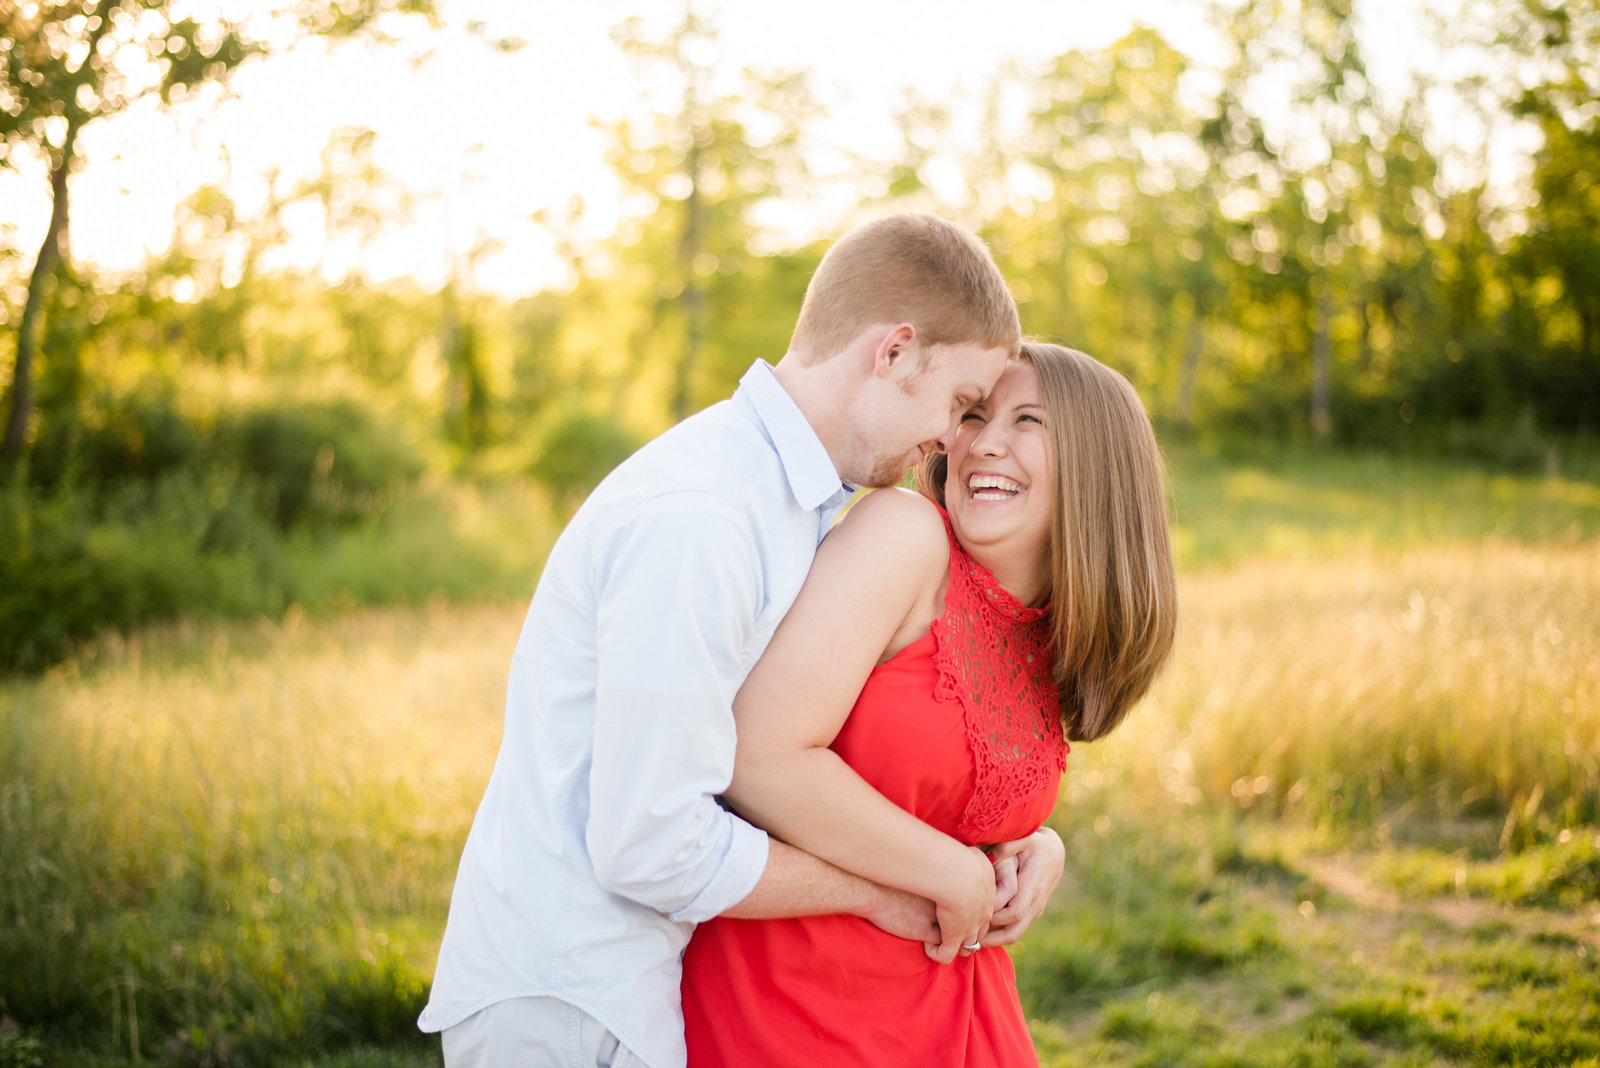 joyful-future-bride-and-groom-standing-in-a-field-during-their-engagement-session-at-Cox-Arboretum